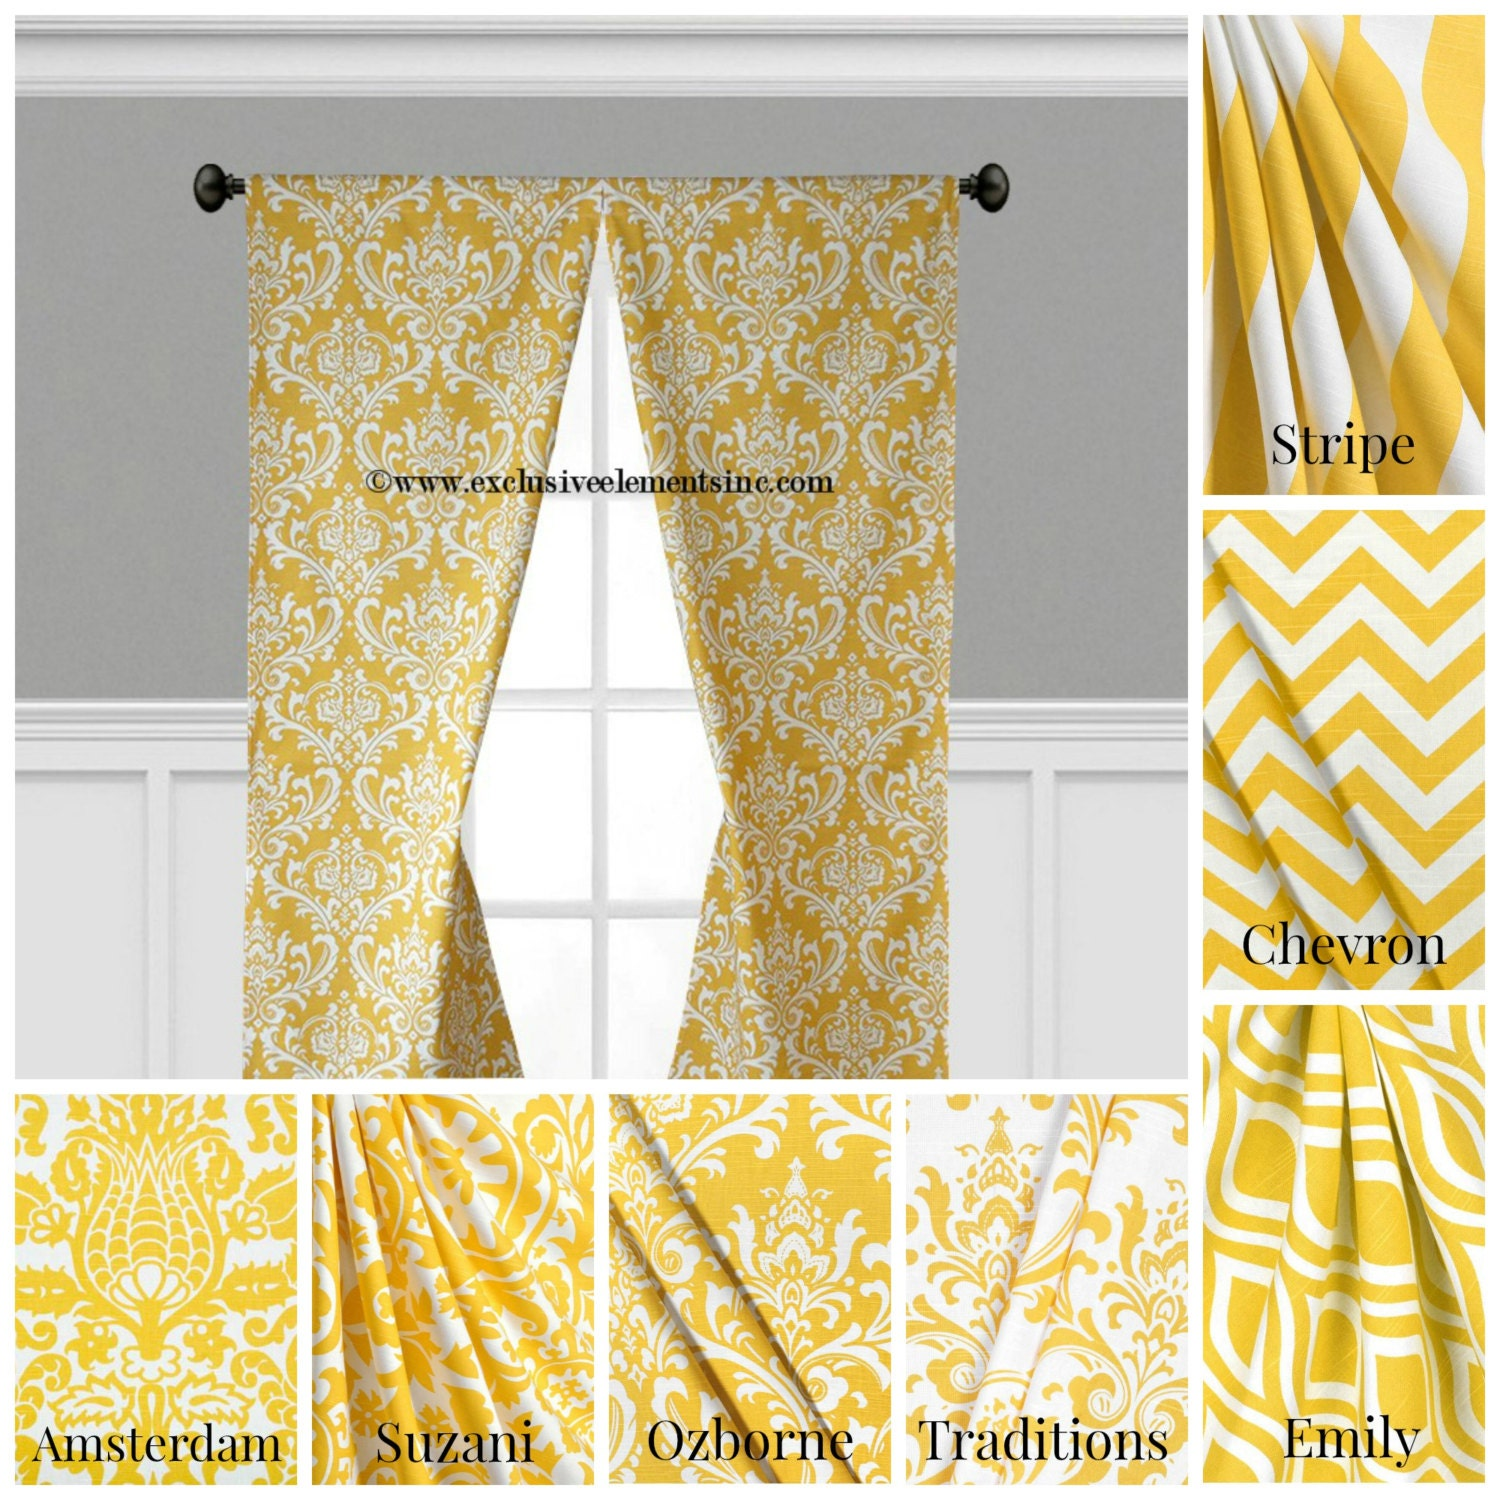 Light pink chevron curtains - Modern Yellow Curtain Panels Modern Geometric Chevron Damask Stripe Drapery Window Treatments Set Pair